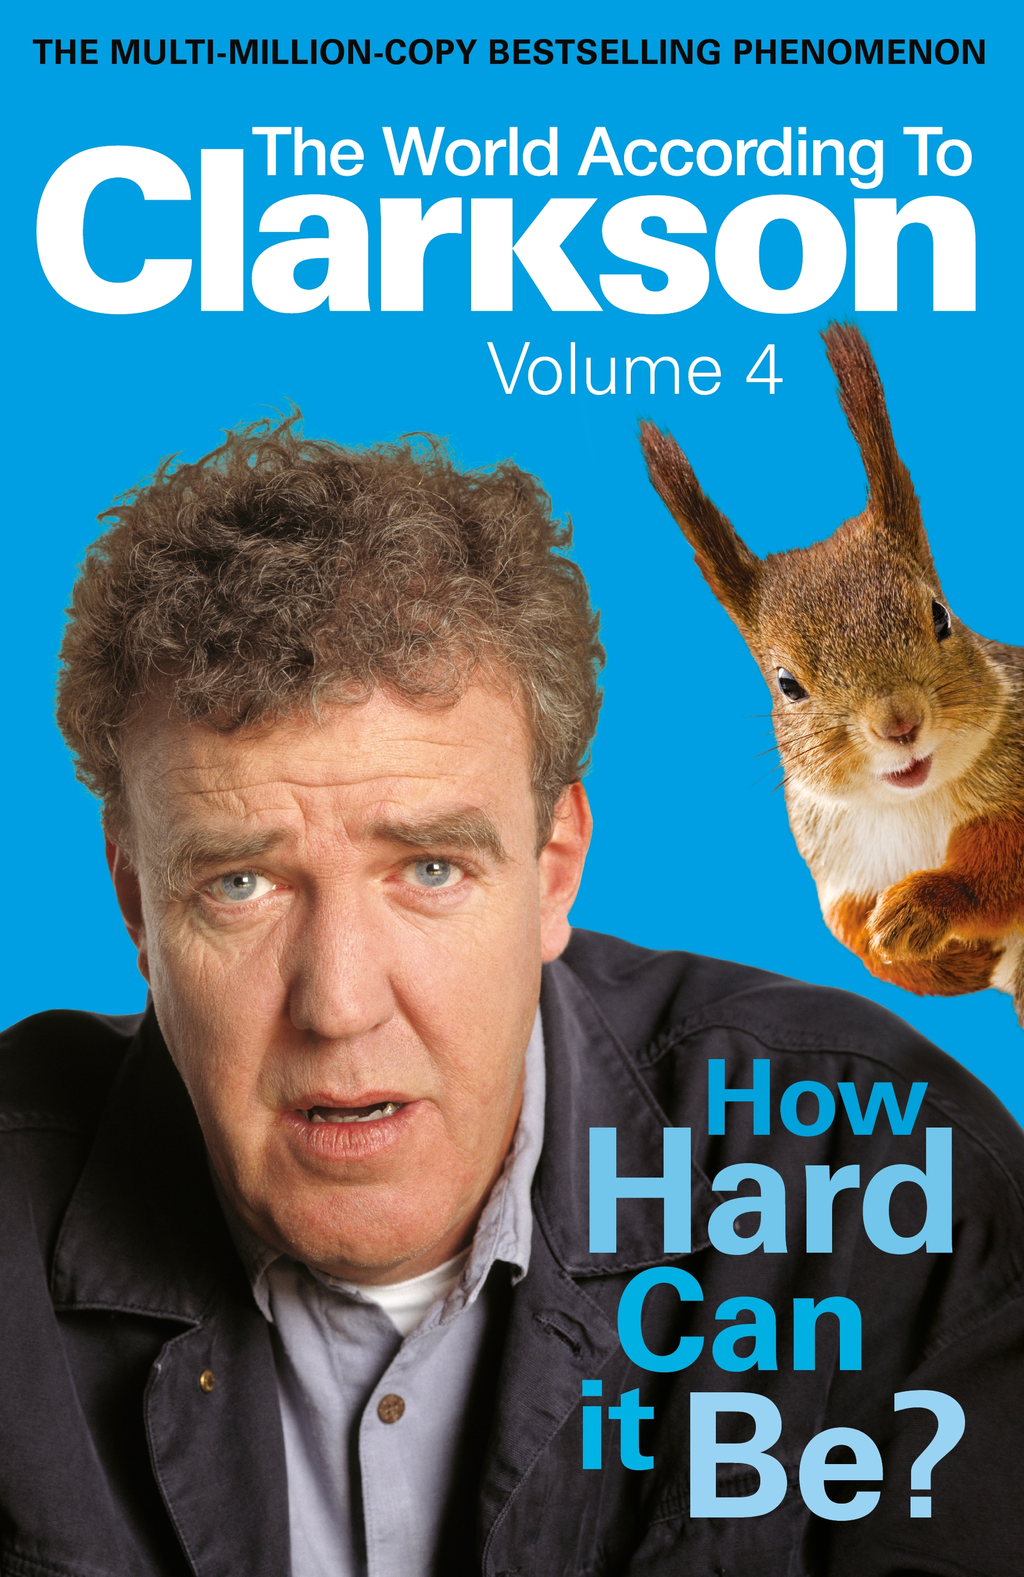 How Hard Can It Be?: The World According to Clarkson Volume 4 The World According to Clarkson Volume 4